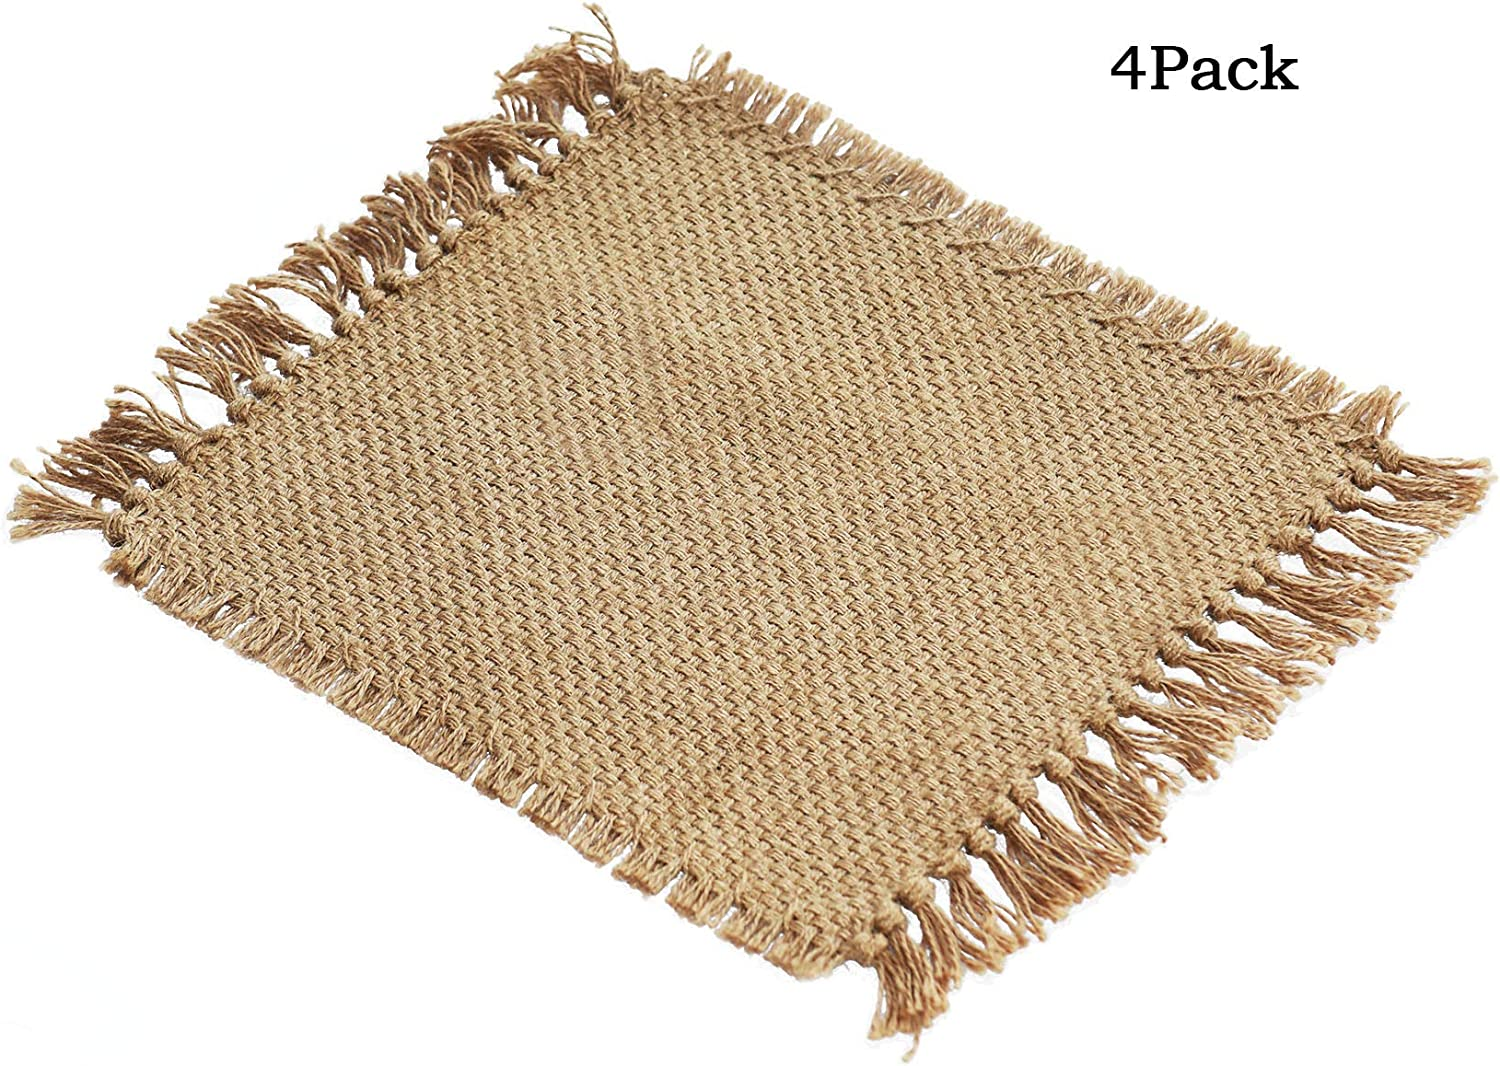 Home·FSN Placemats Set of 4, 100% Jute 12 X 17 Inches Table Mats for Dining Tables, Wedding, Parties, BBQ's, Everyday, Holidays